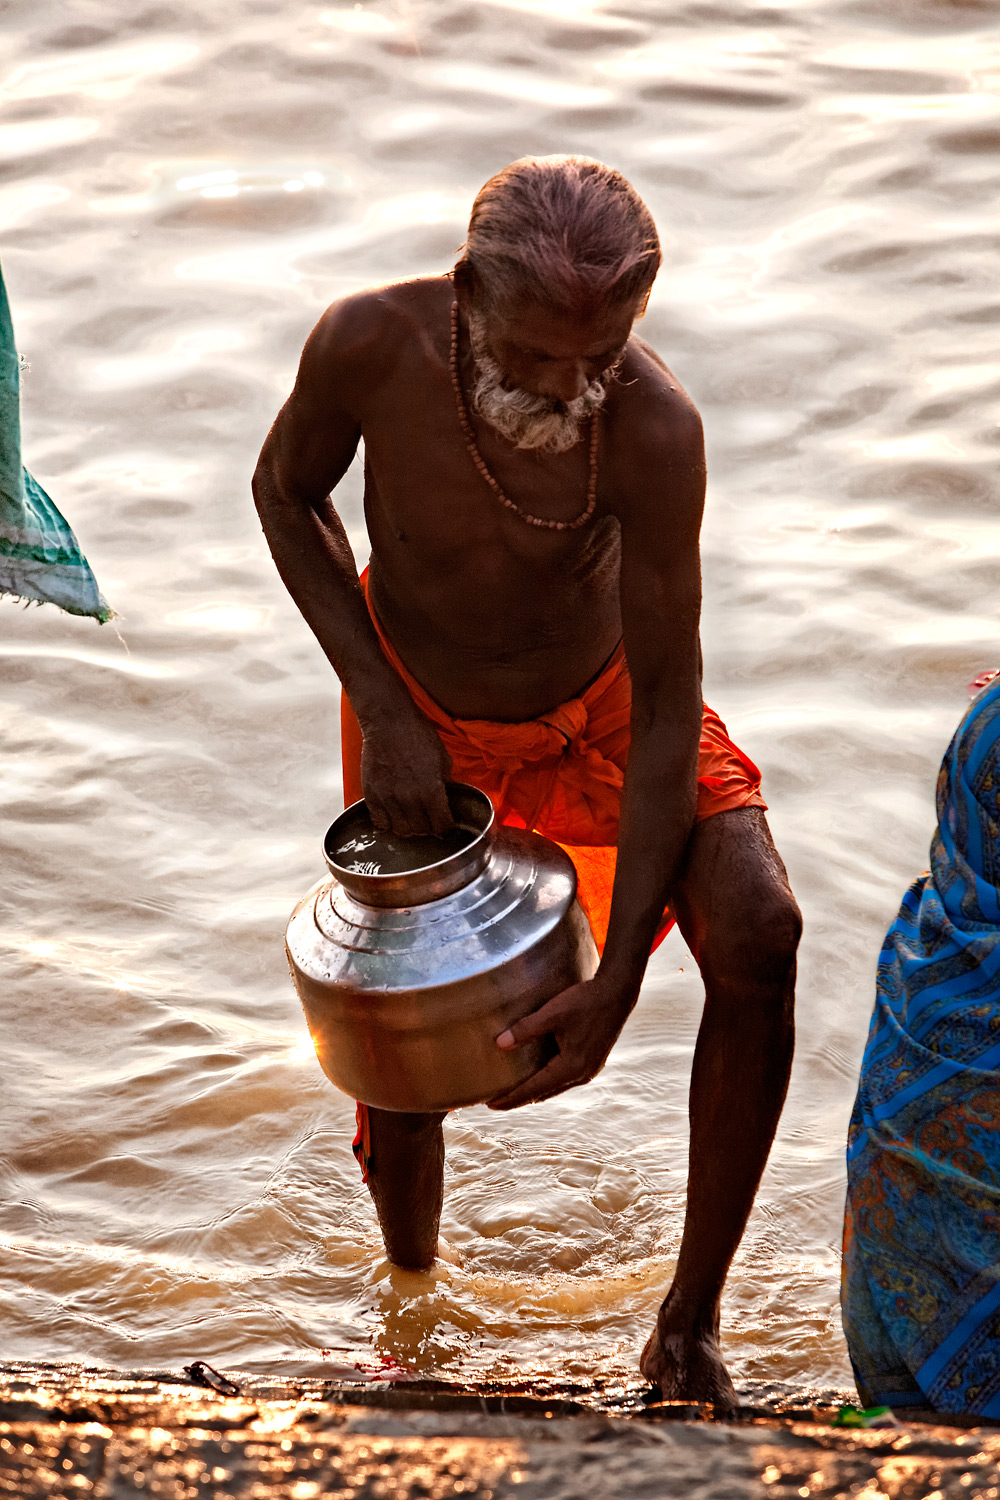 Filling up, Assi ghat, Varanasi, India